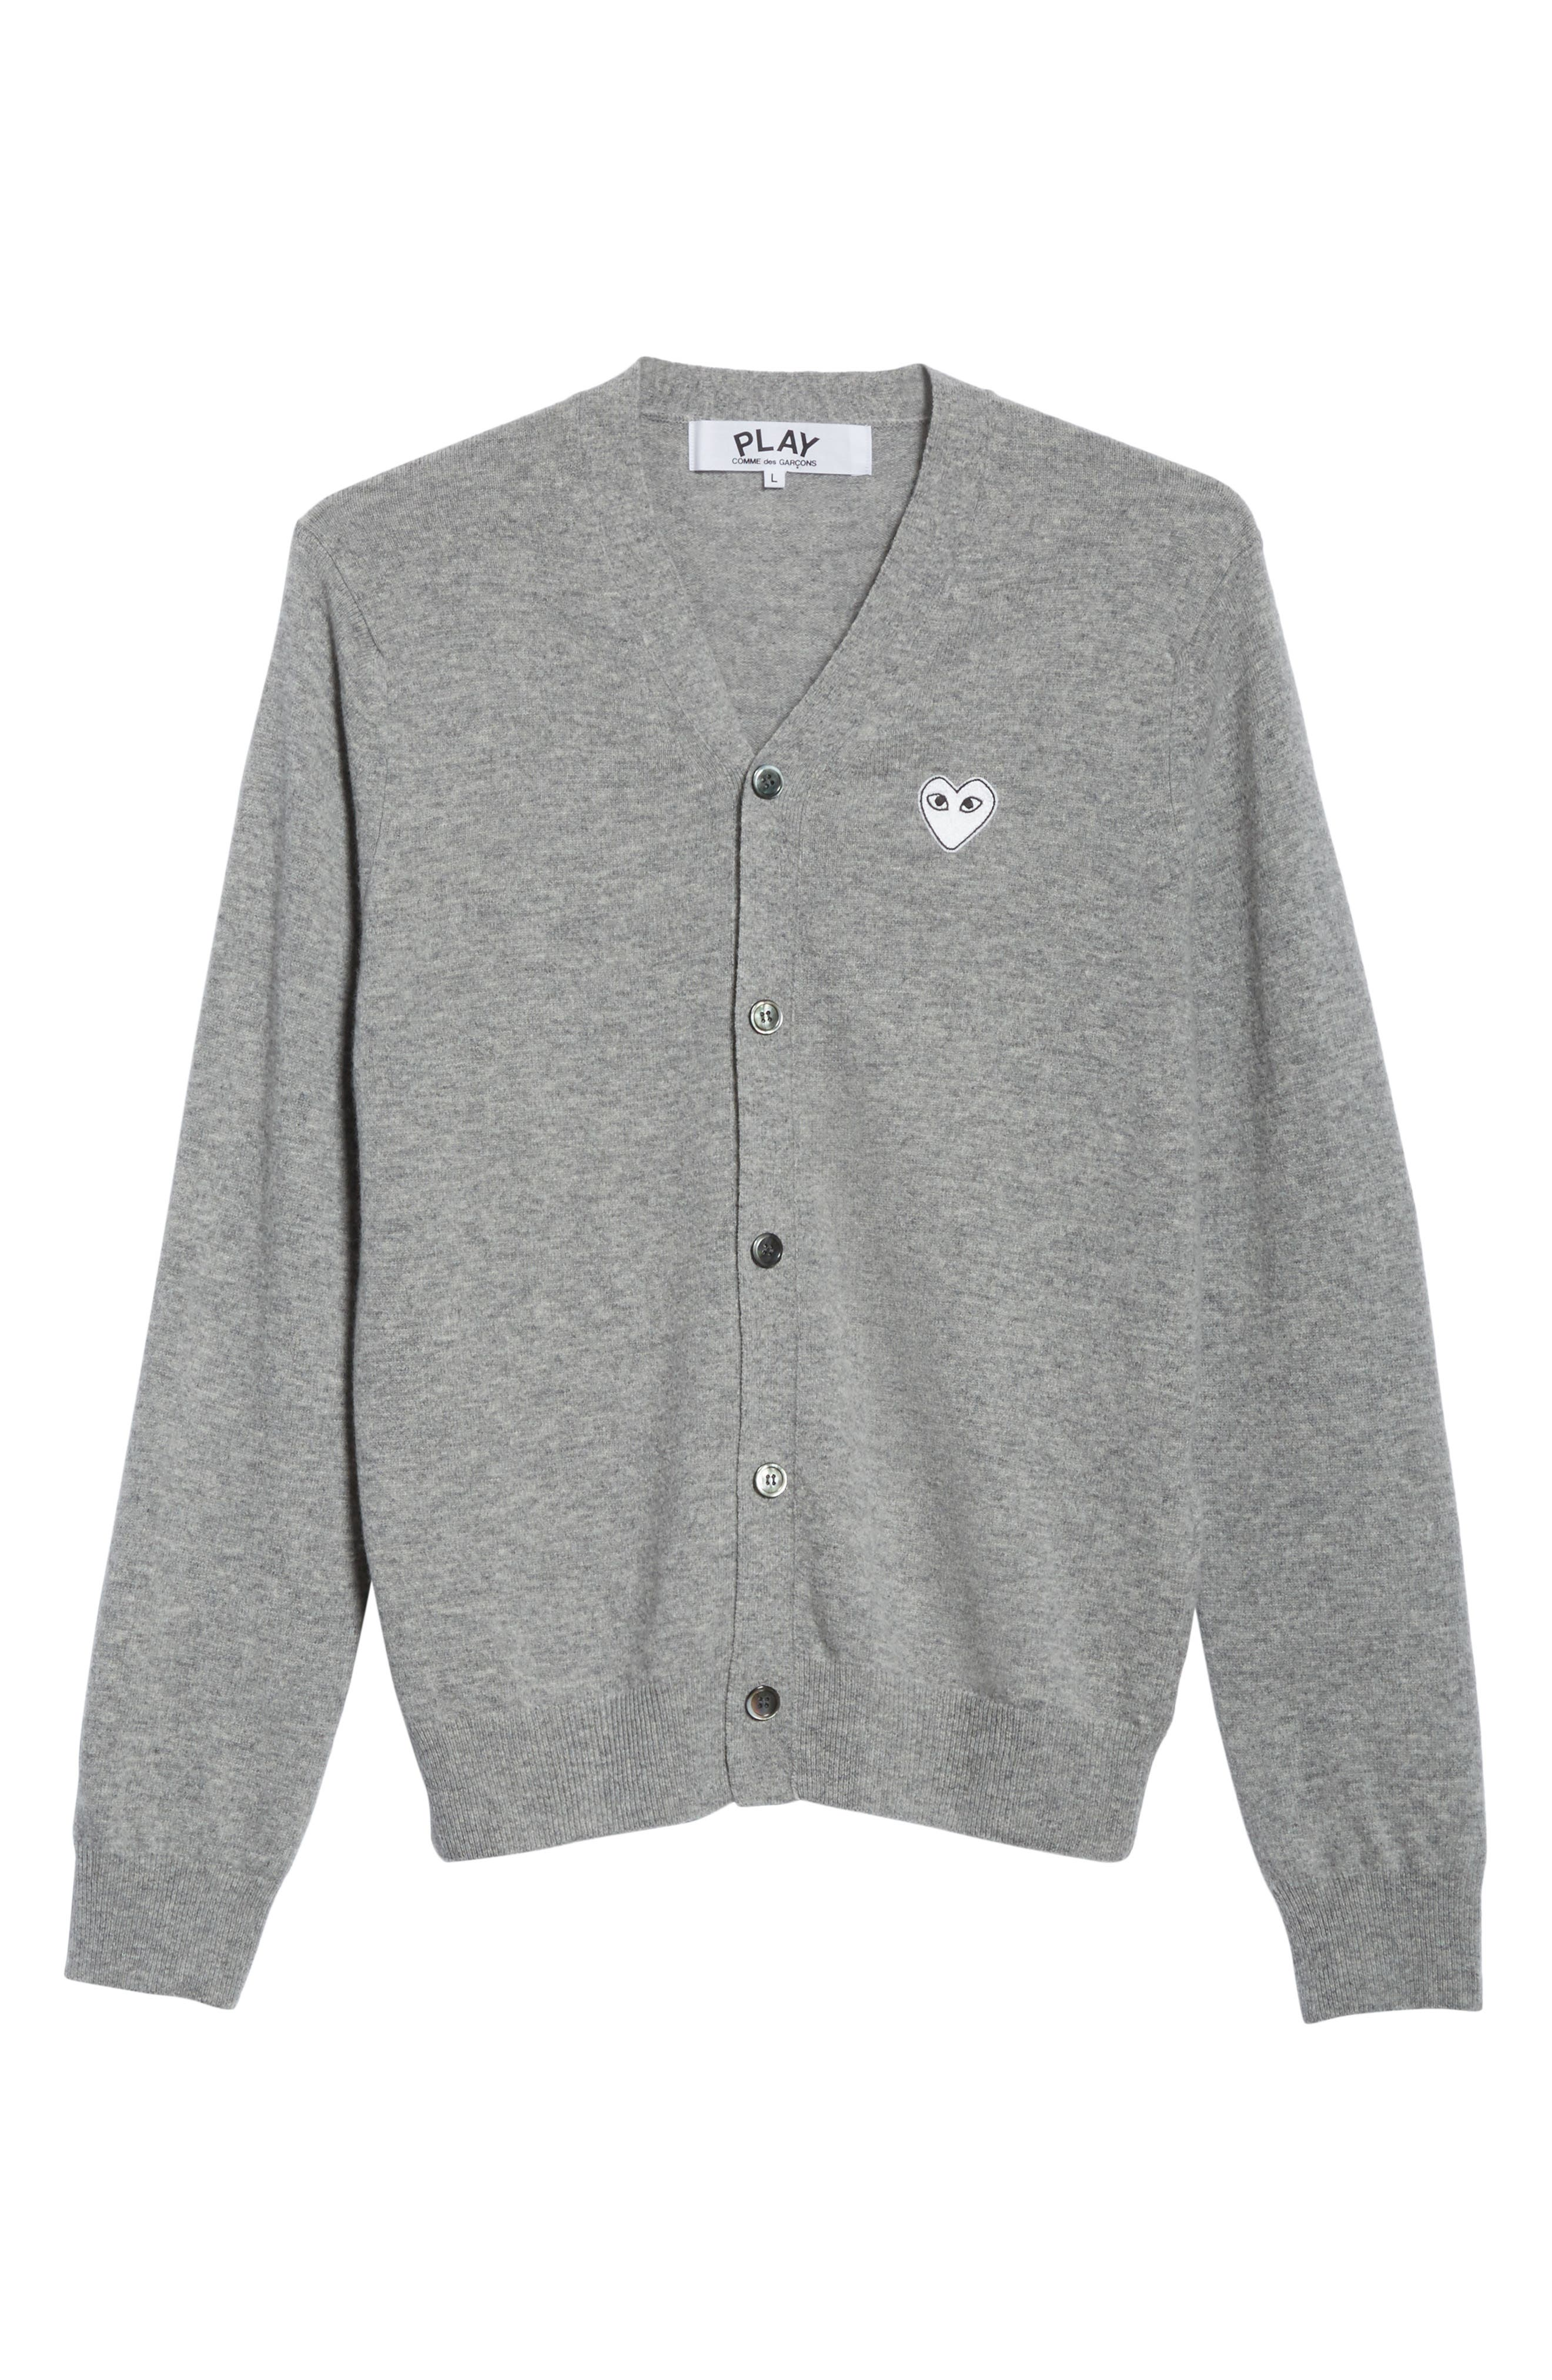 White Heart Wool Cardigan,                             Alternate thumbnail 6, color,                             LIGHT GREY